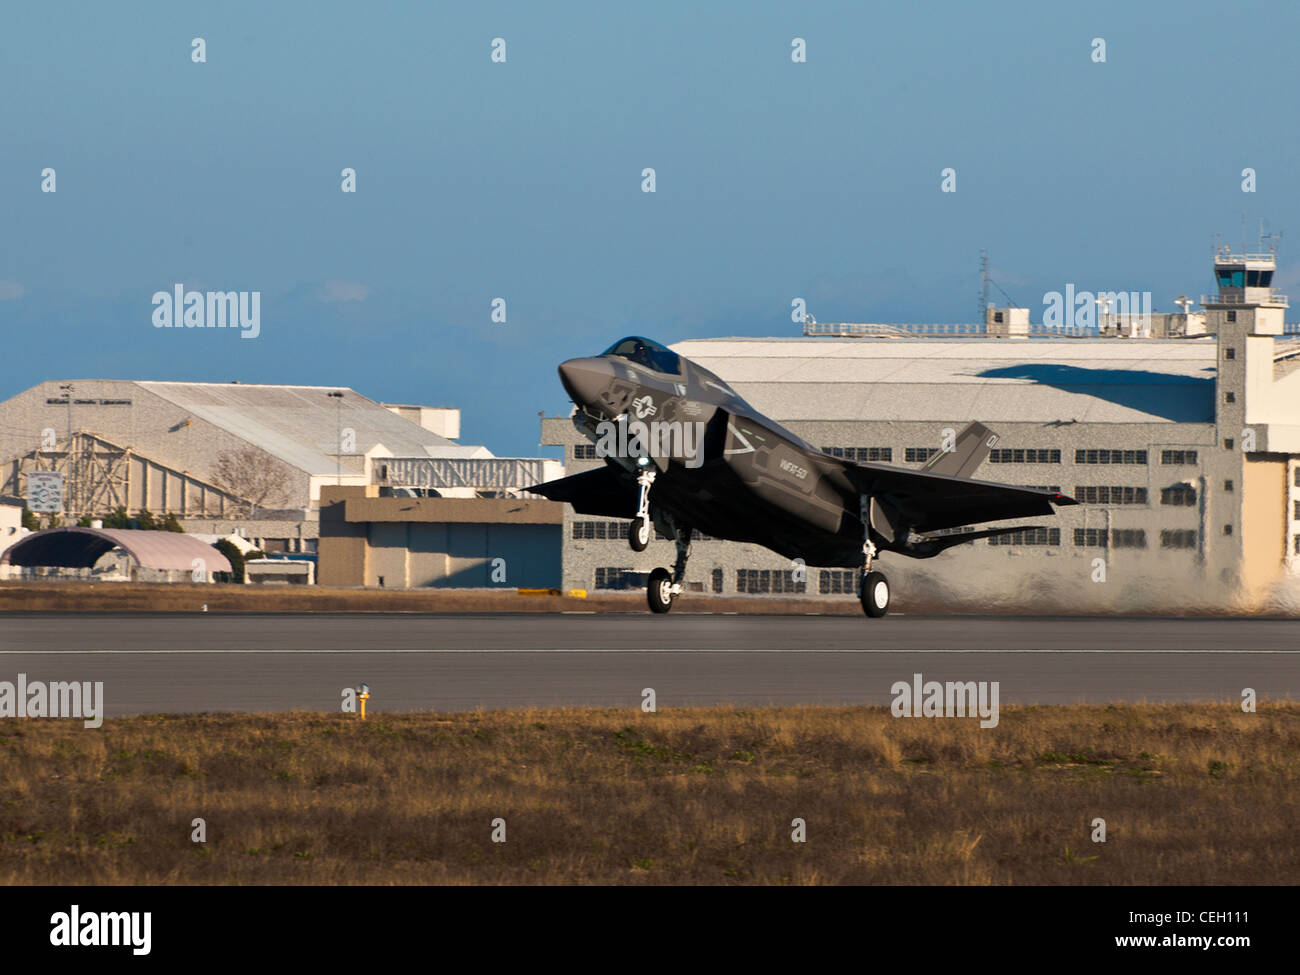 The Marine Corp's newest aircraft, the F-35B Lightning II joint strike fighter, touches down at its new home - Stock Image